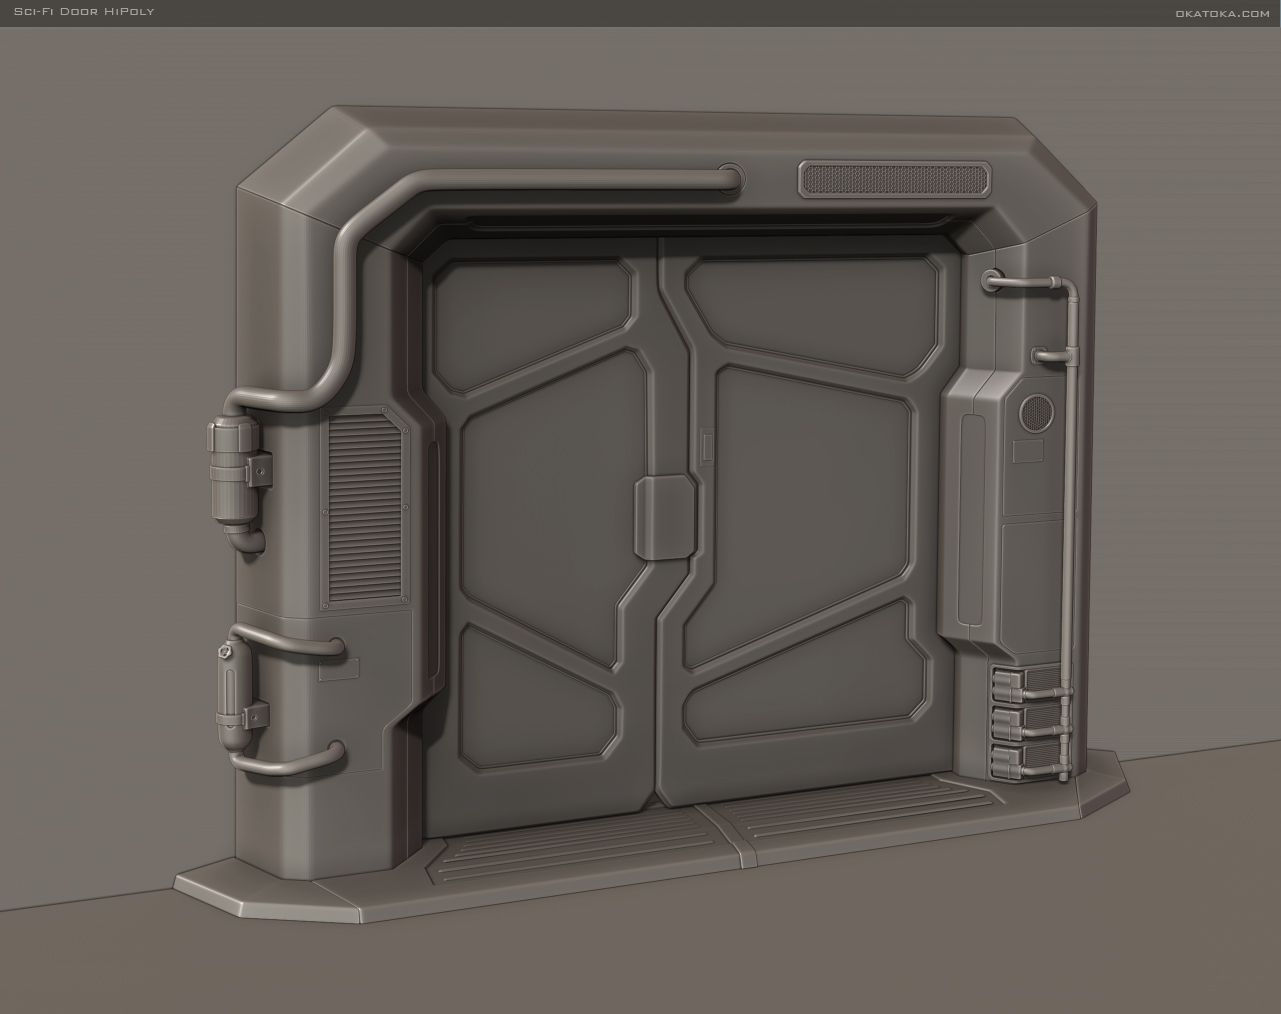 Spaceship doors google search bg reference pinterest for Puerta nave espacial